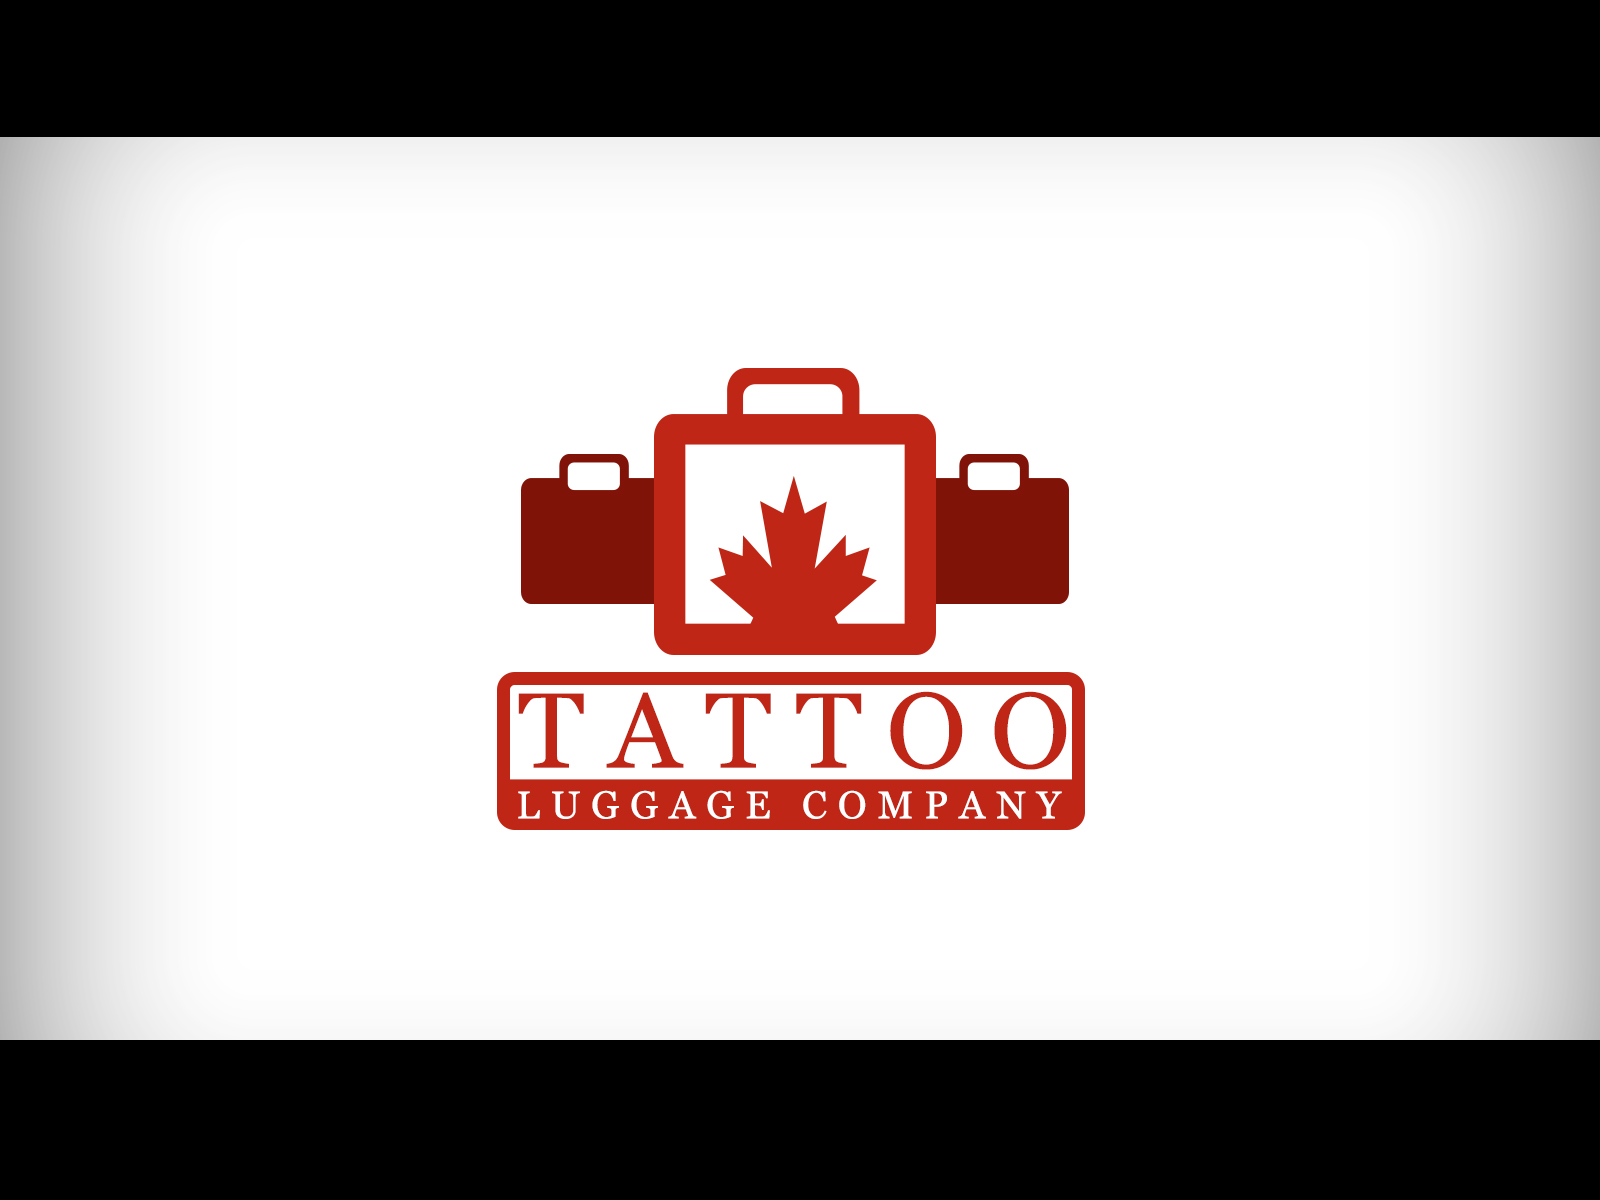 Logo Design by Virgilio Pineda III - Entry No. 180 in the Logo Design Contest Artistic Logo Design for Tattoo Luggage Company.